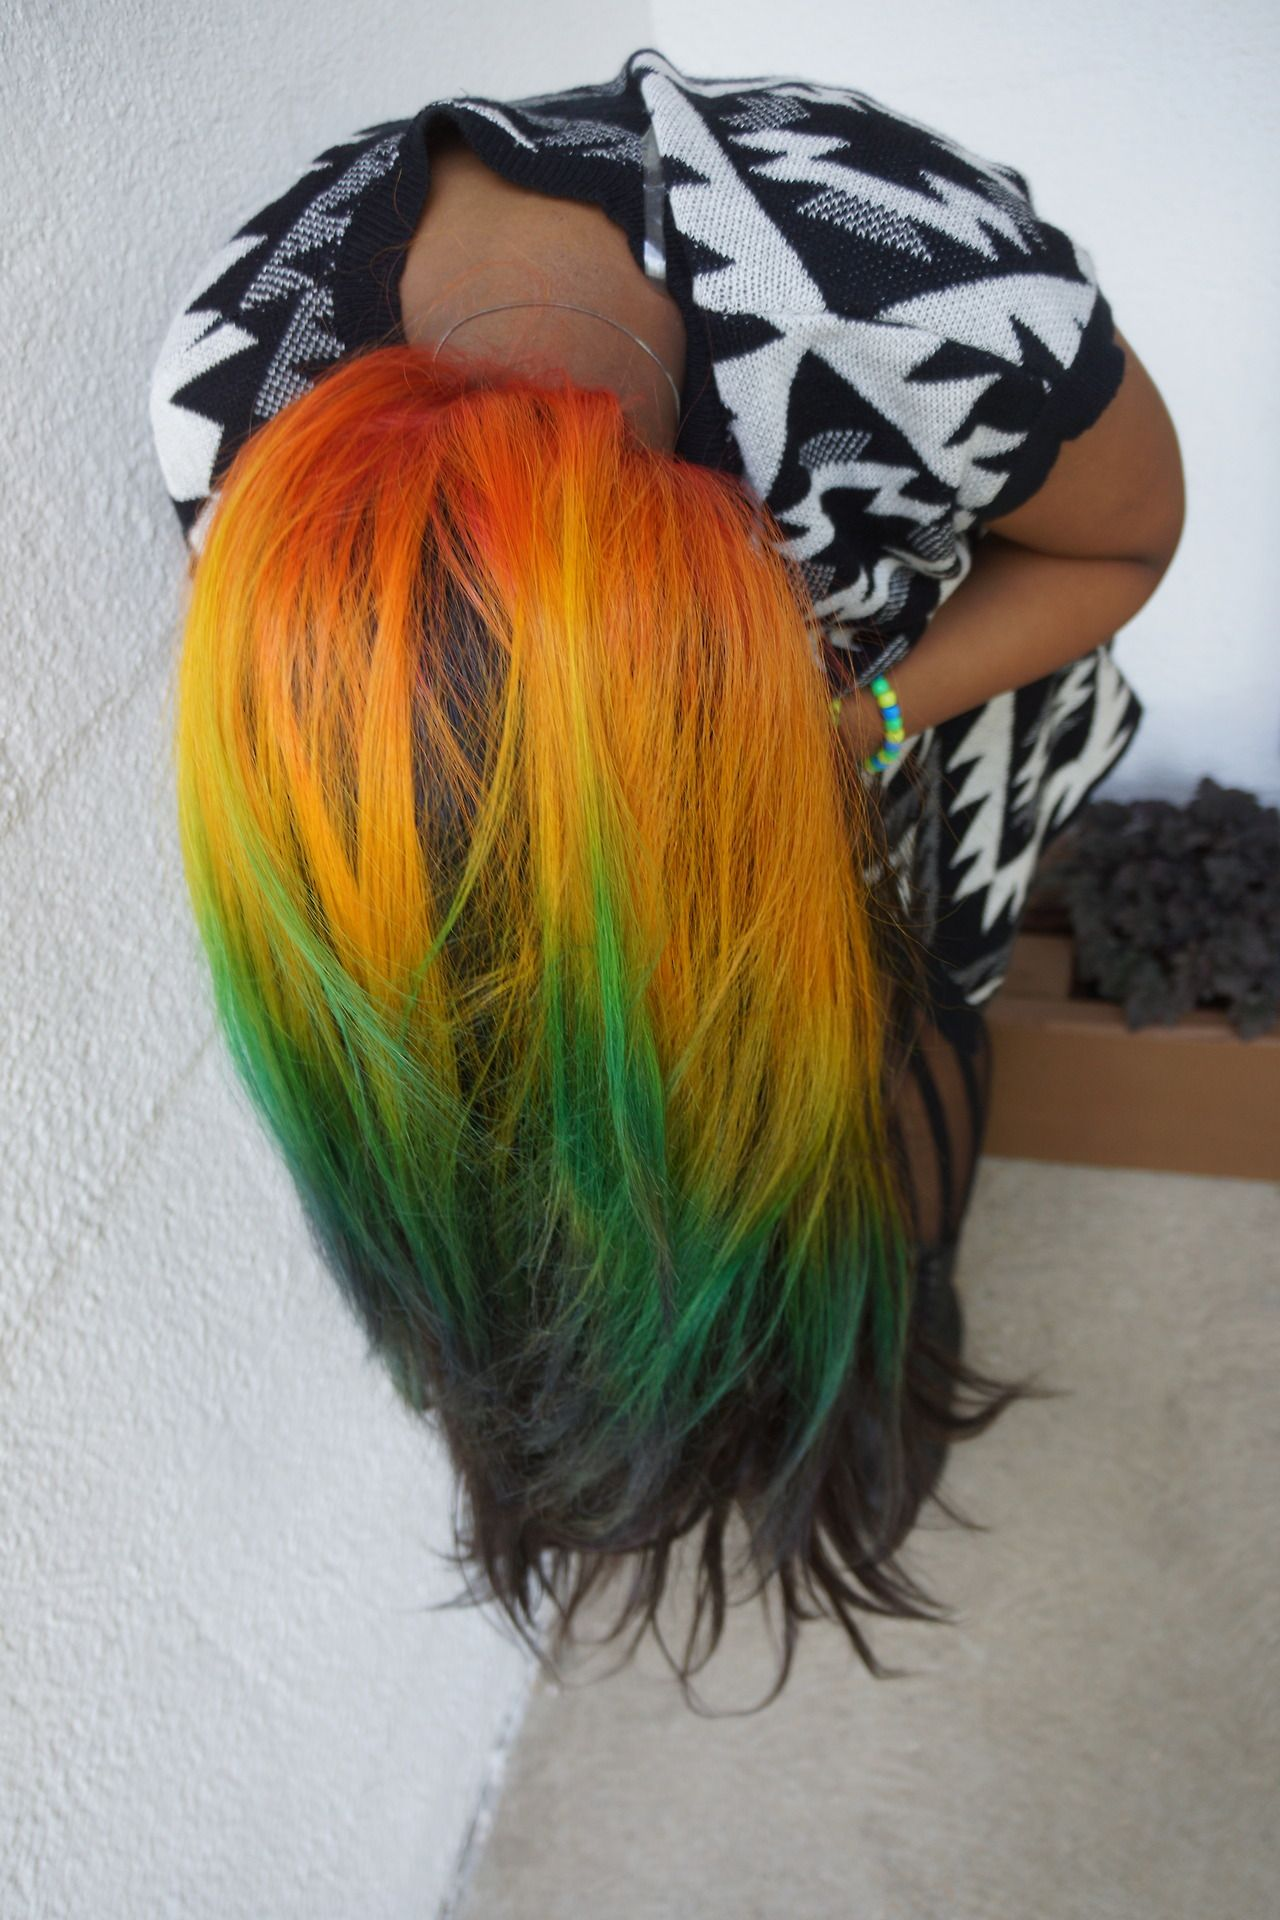 Red Orange Yellow Green And Black Hair Hair Color Crazy Hair Color Hair